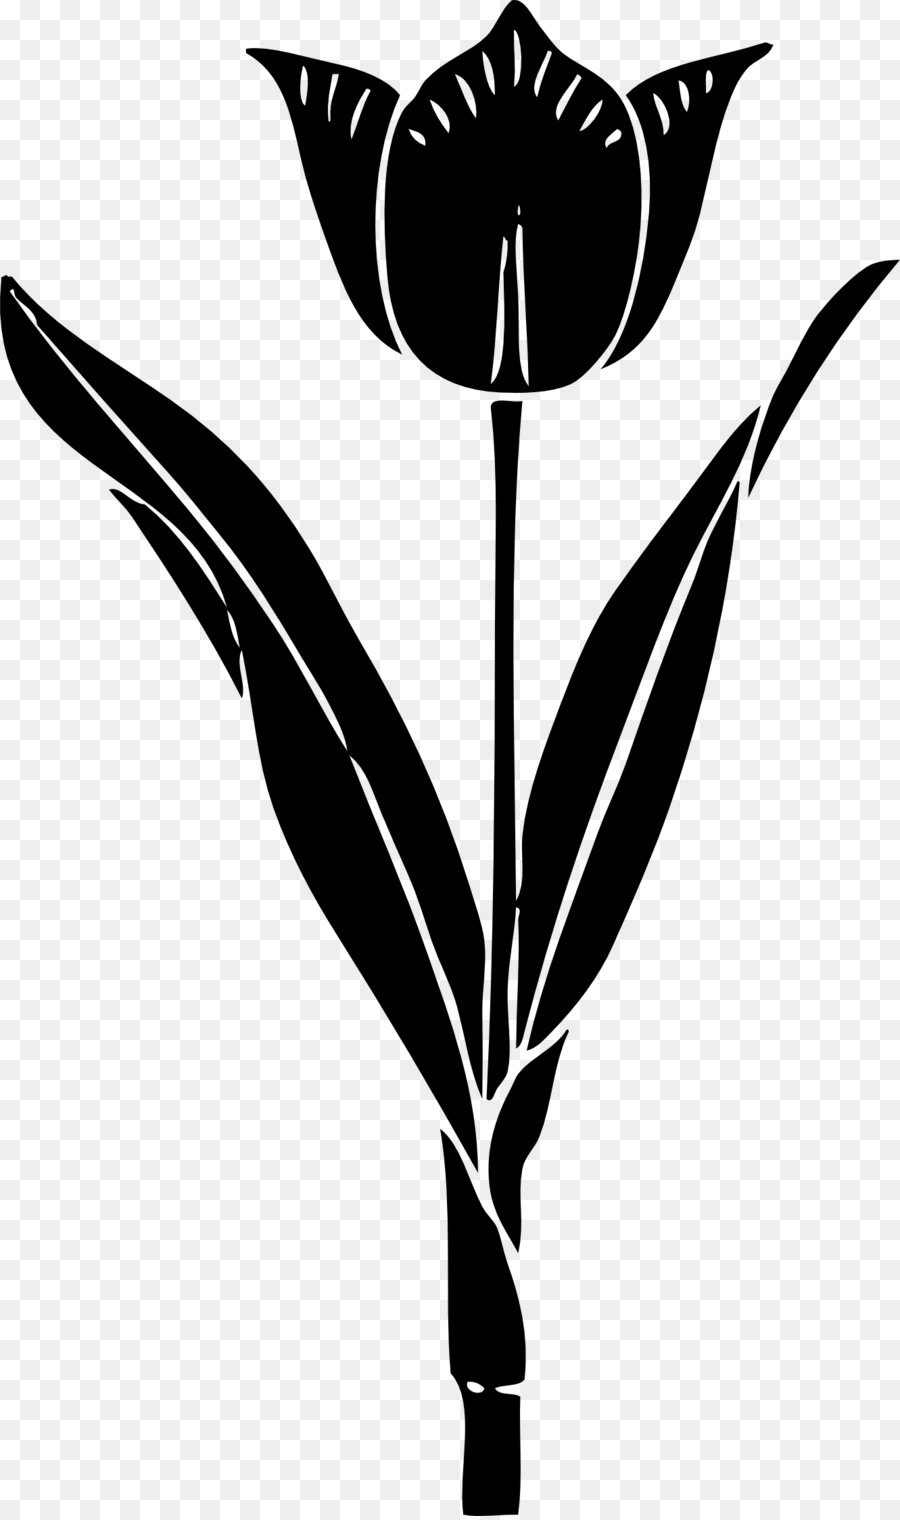 Black And White Flower clipart - Tulip, Silhouette, Flower ... image transparent library